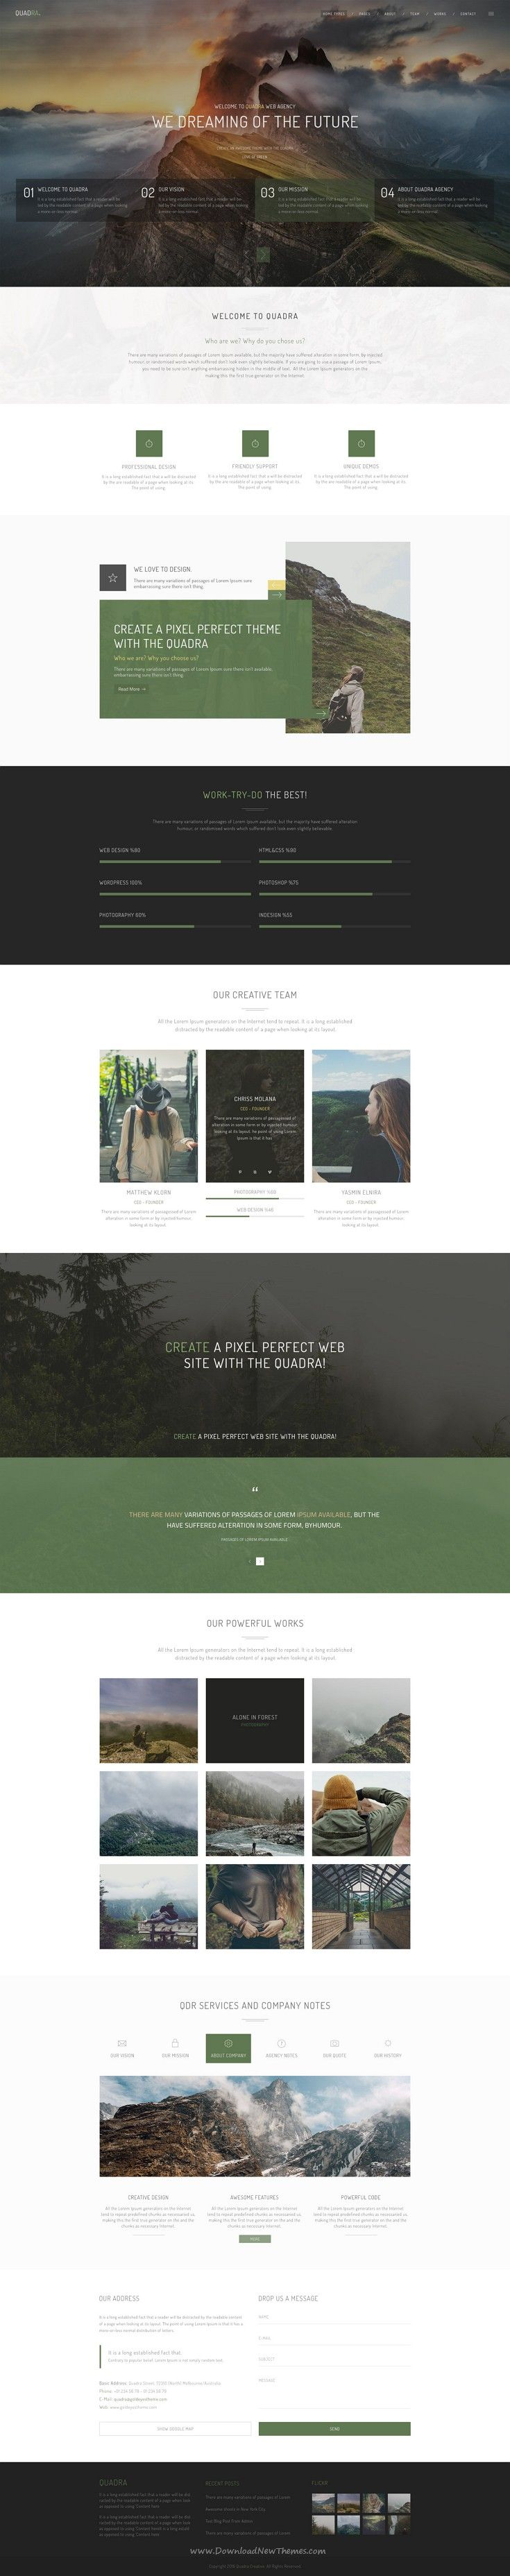 98 best Site designs images on Pinterest Web layout Web design